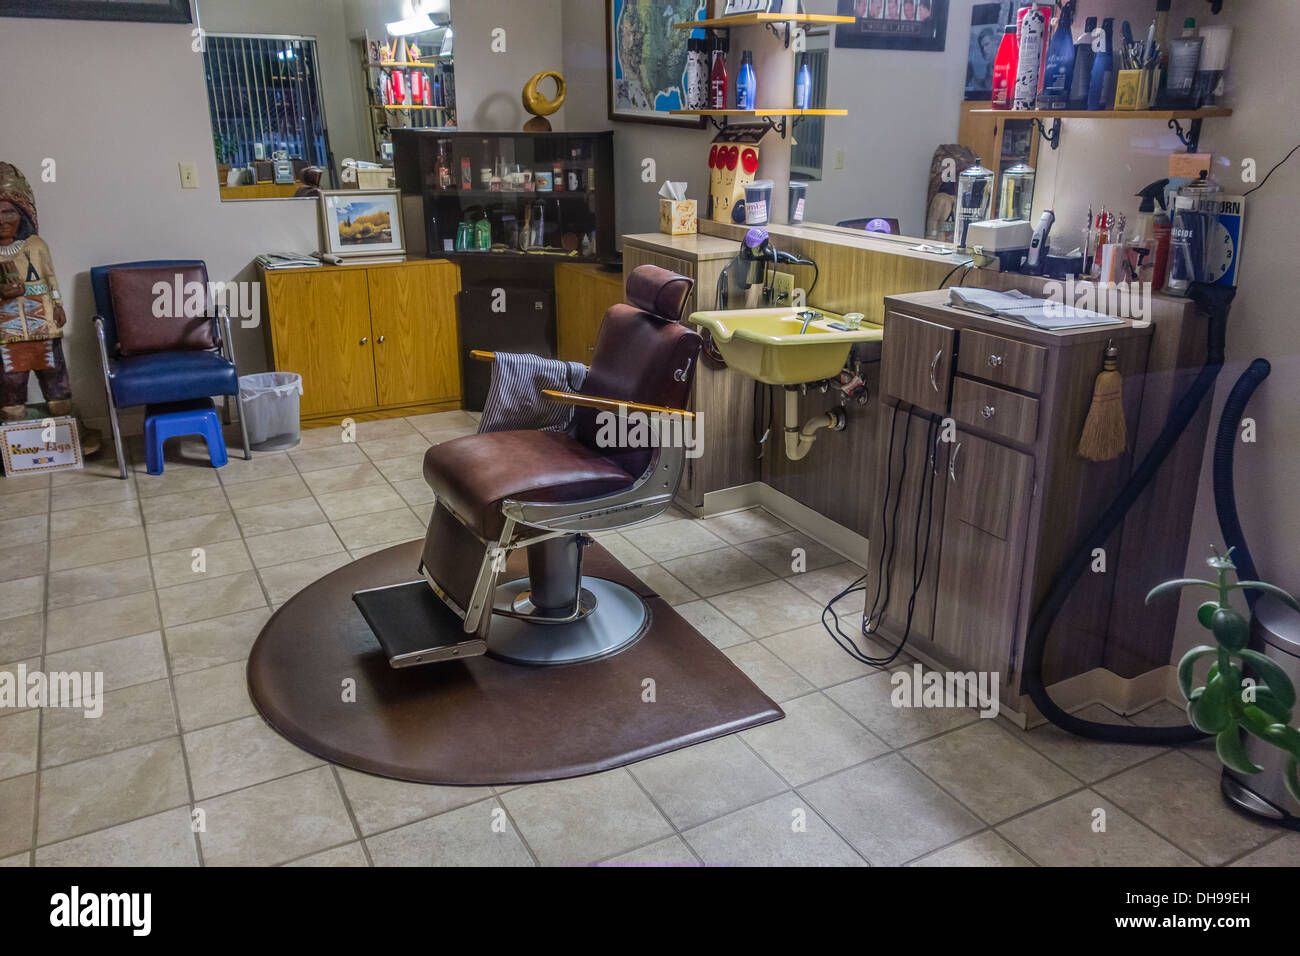 Unoccupied one chair barbershop lit by fluorescent light in Ojai, California. - Stock Image